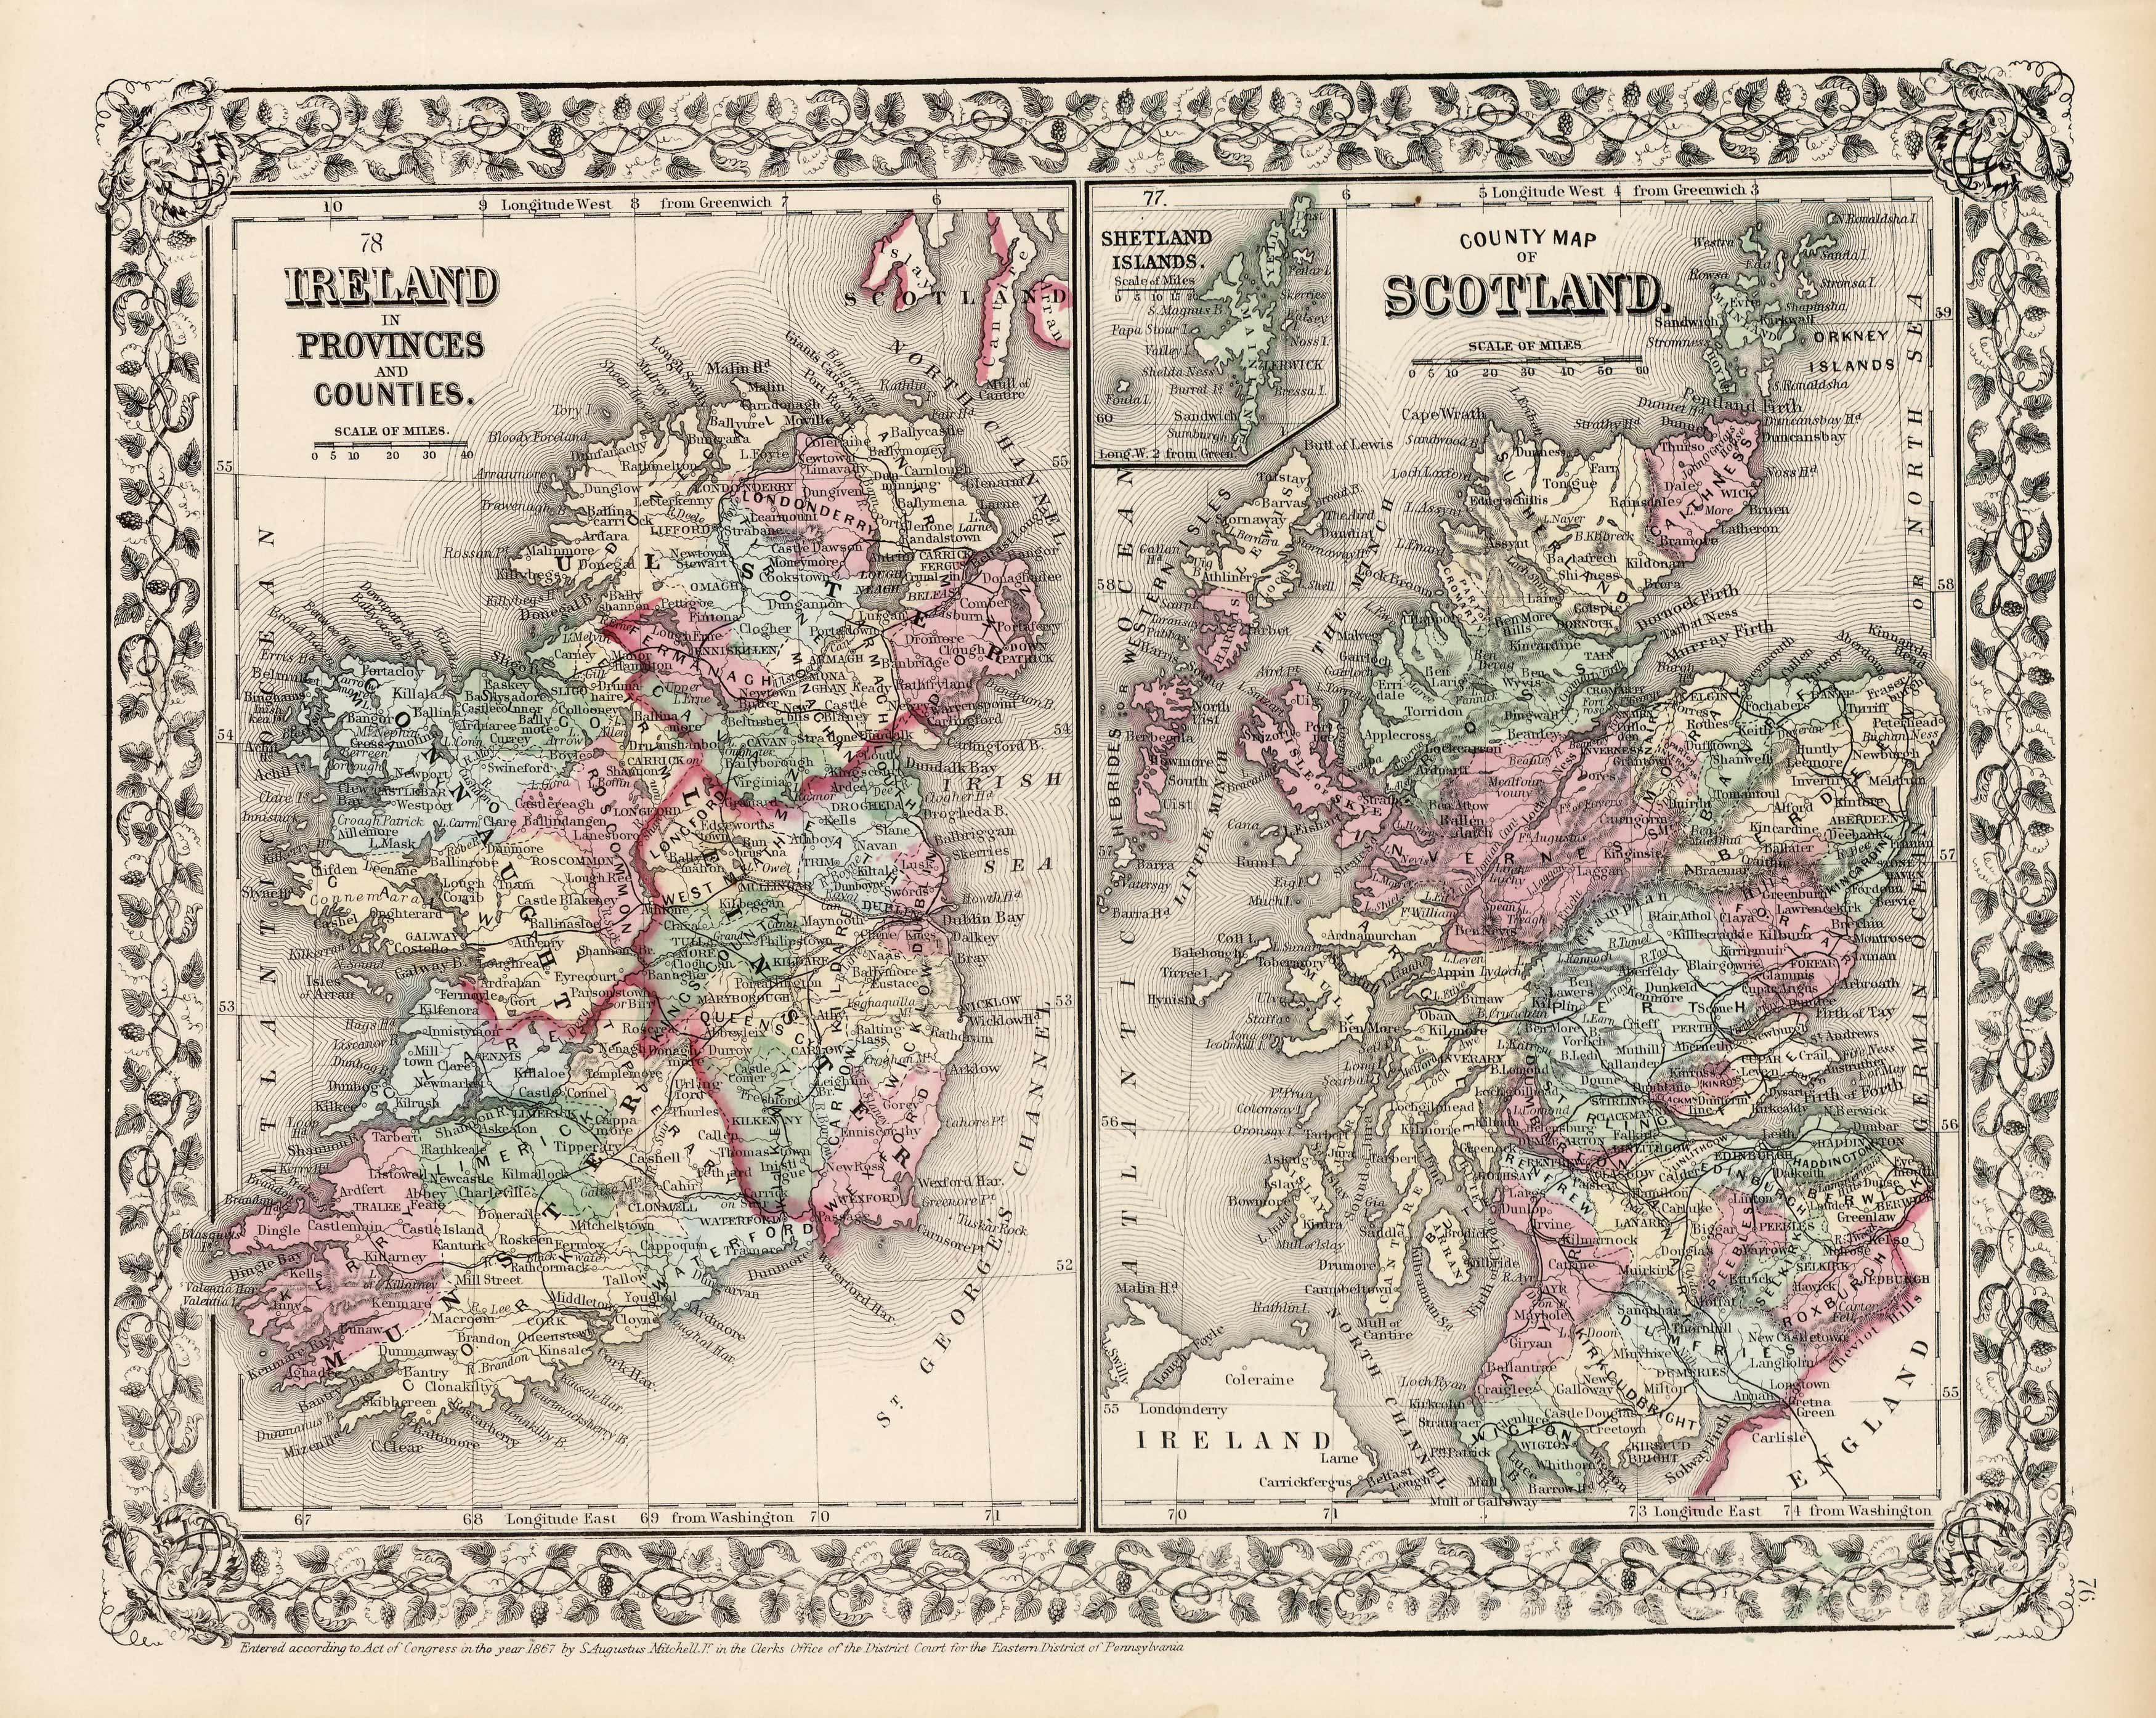 Ireland in Provinces and Counties